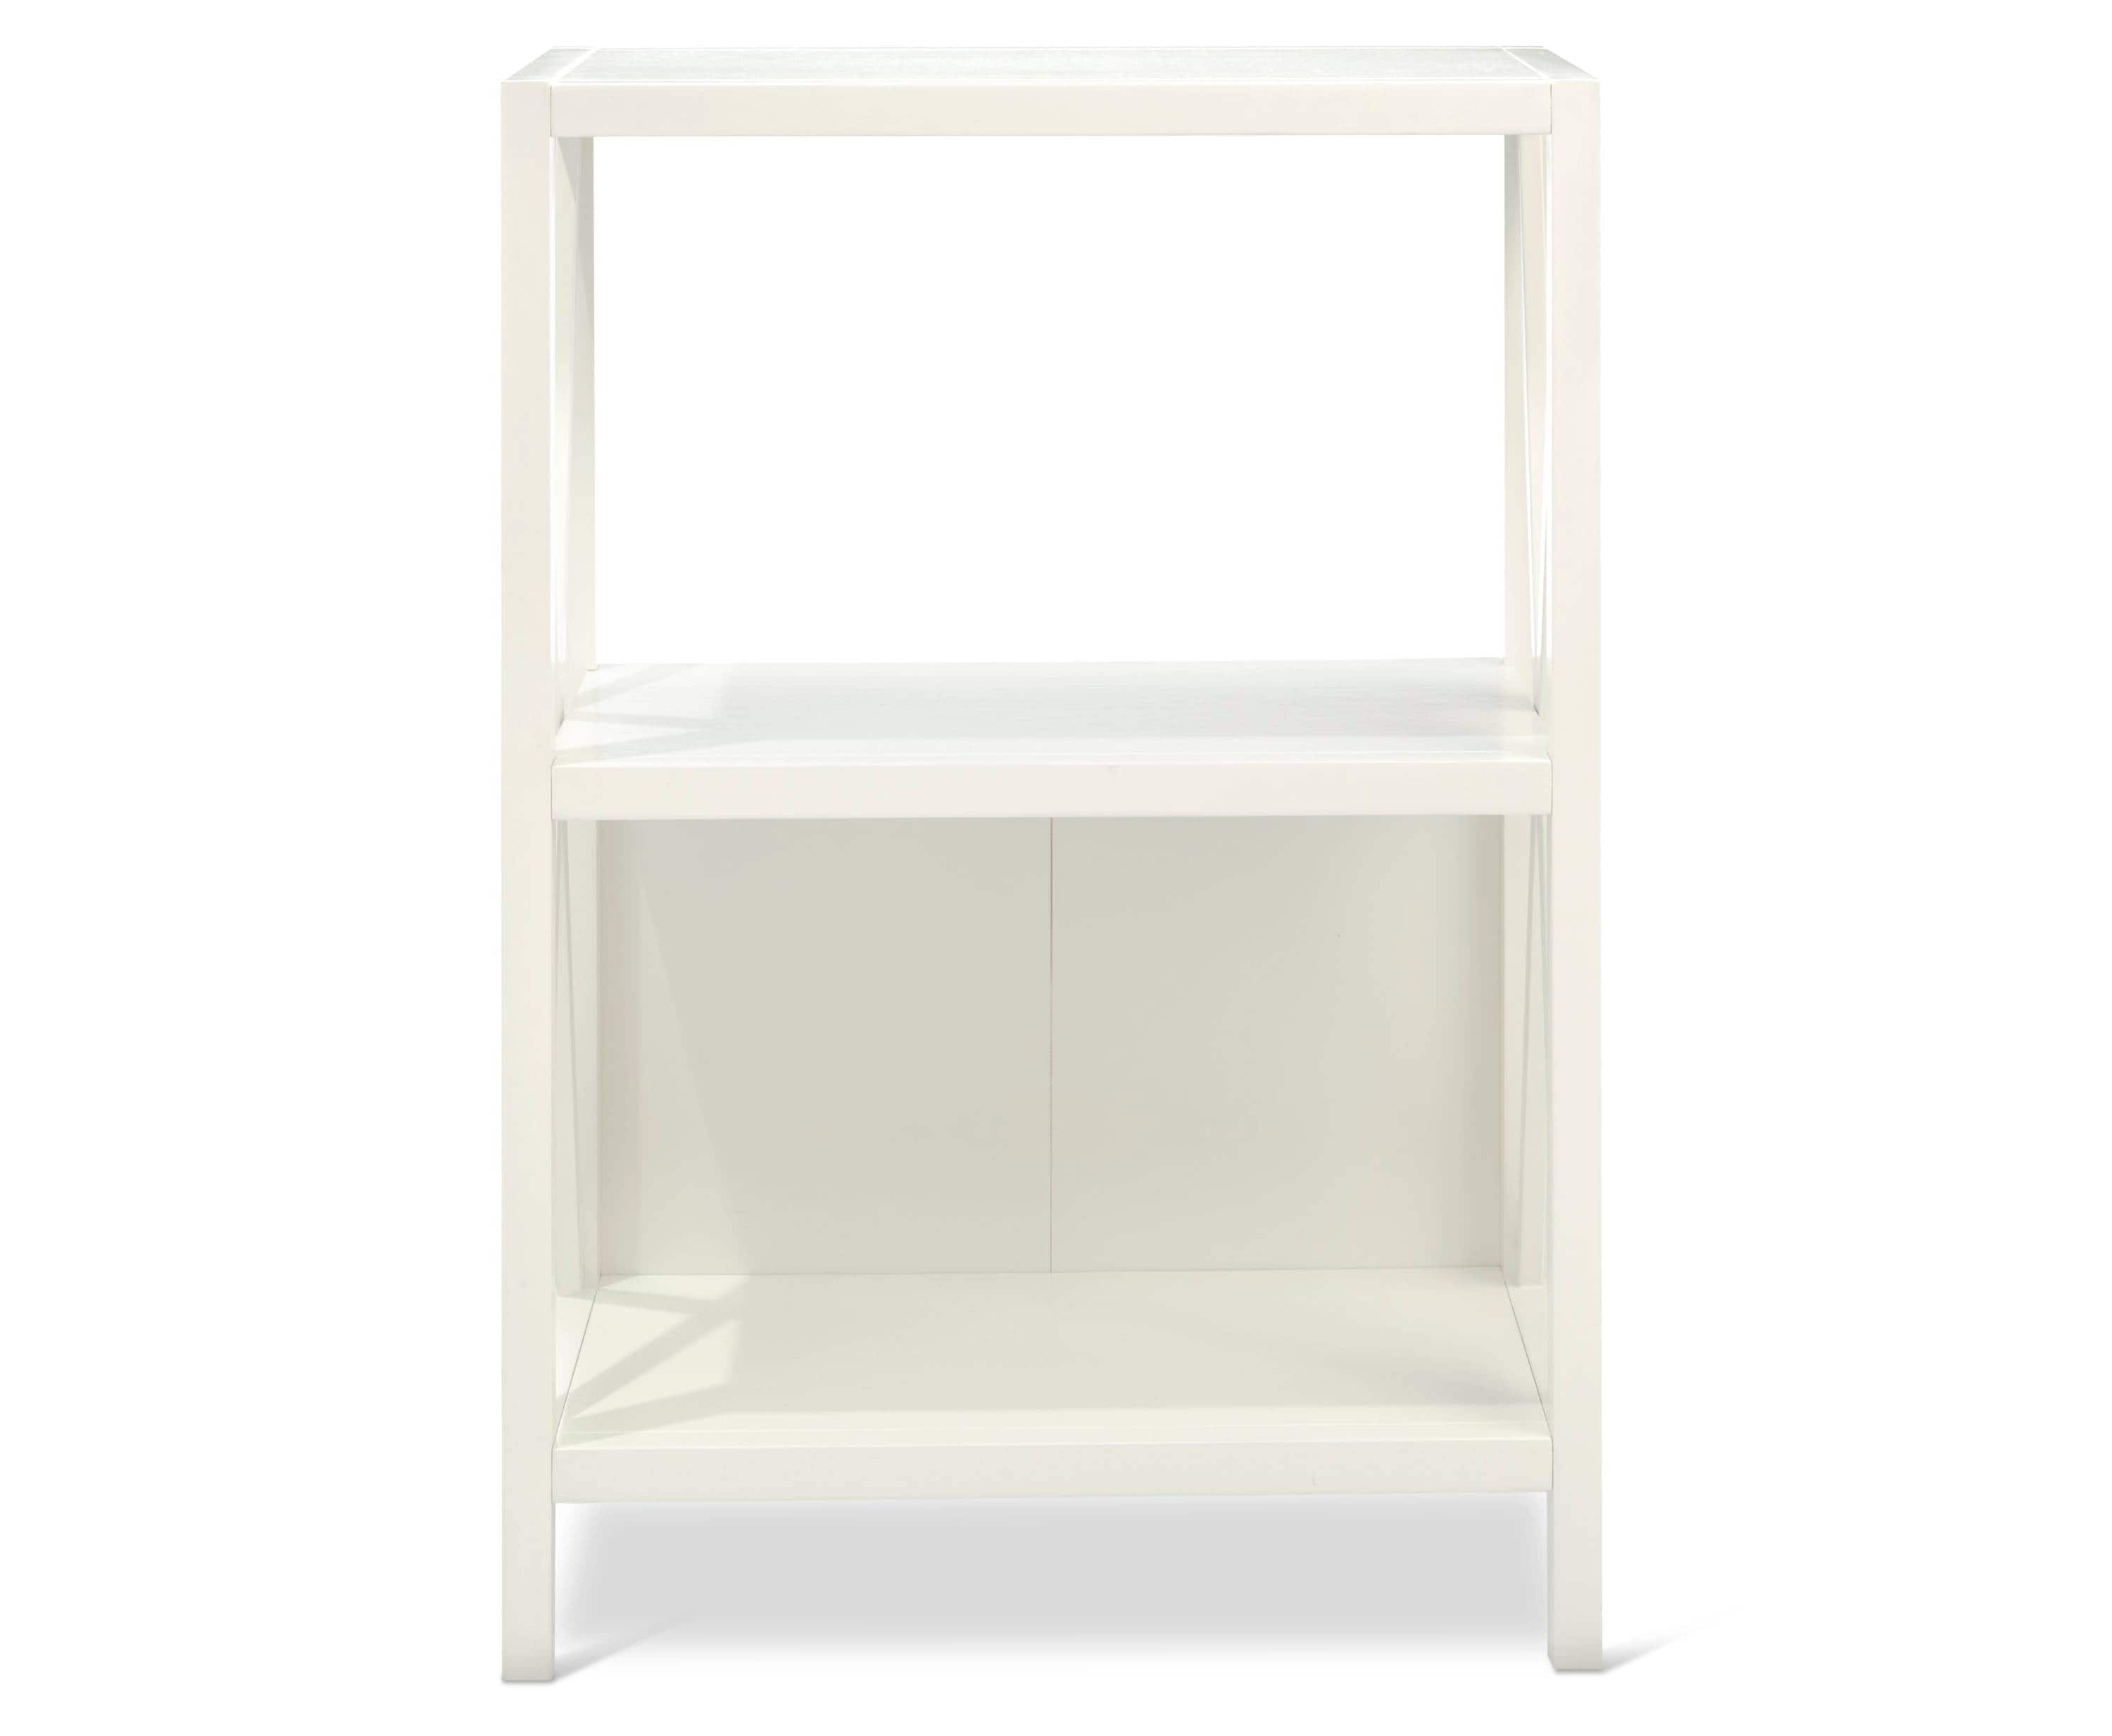 Target Hamilton 2 Shelf Bookcase Off White 26 98 Free